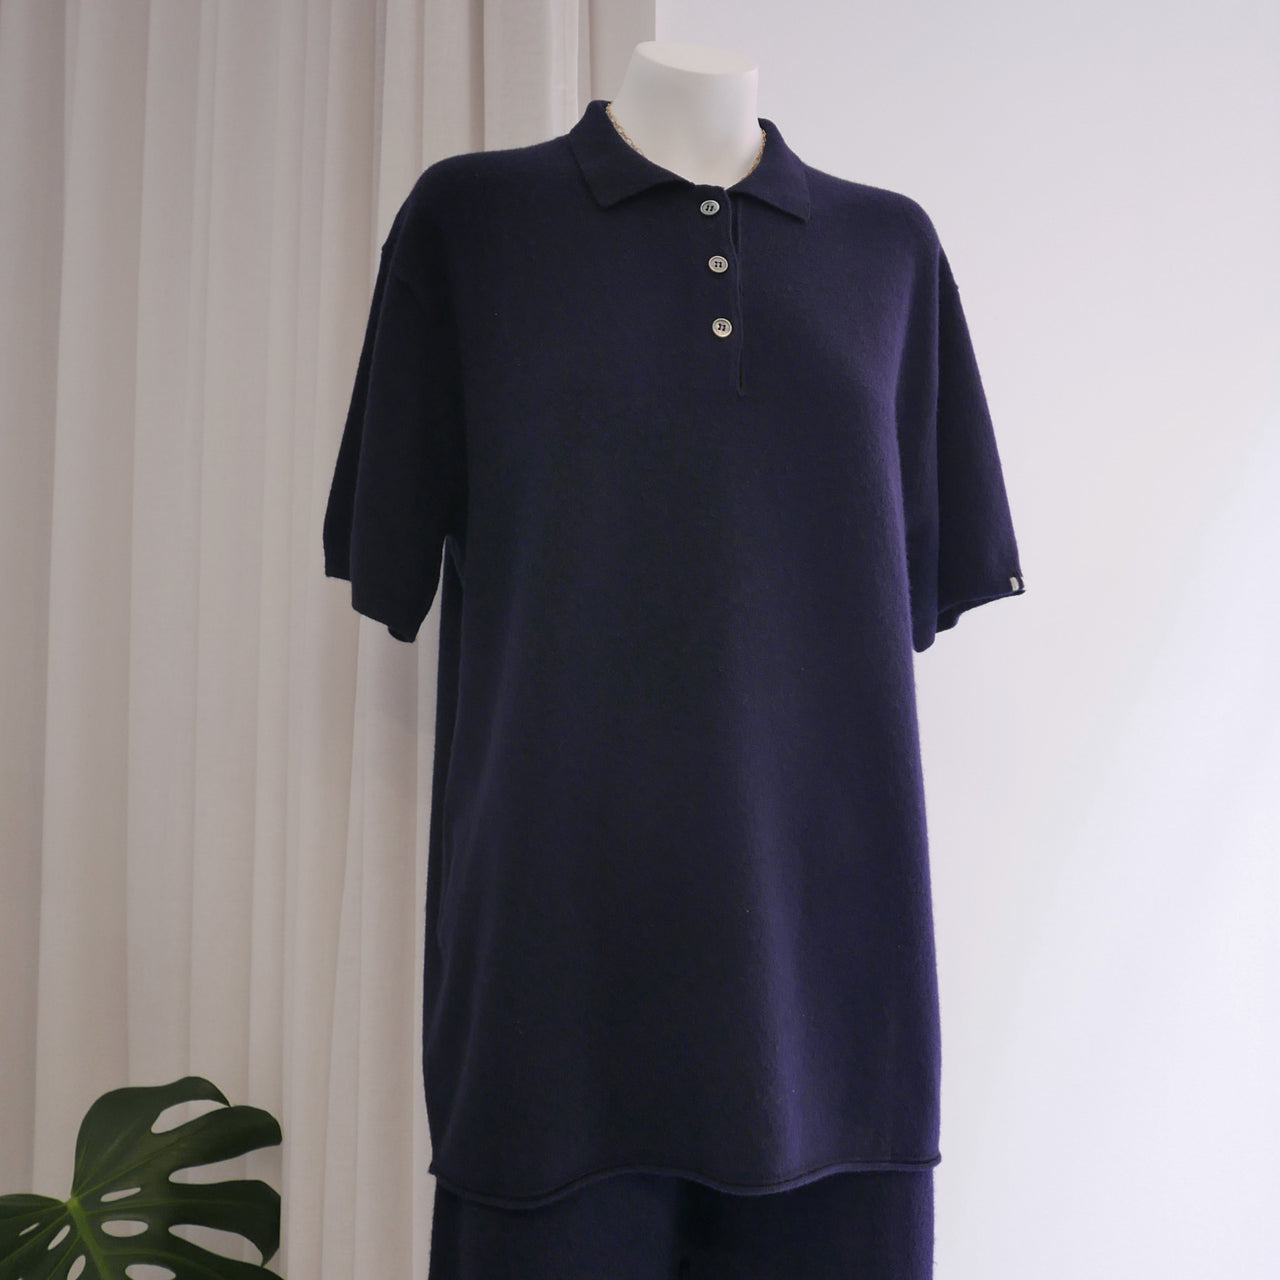 Lezard Cashmere Polo in Navy